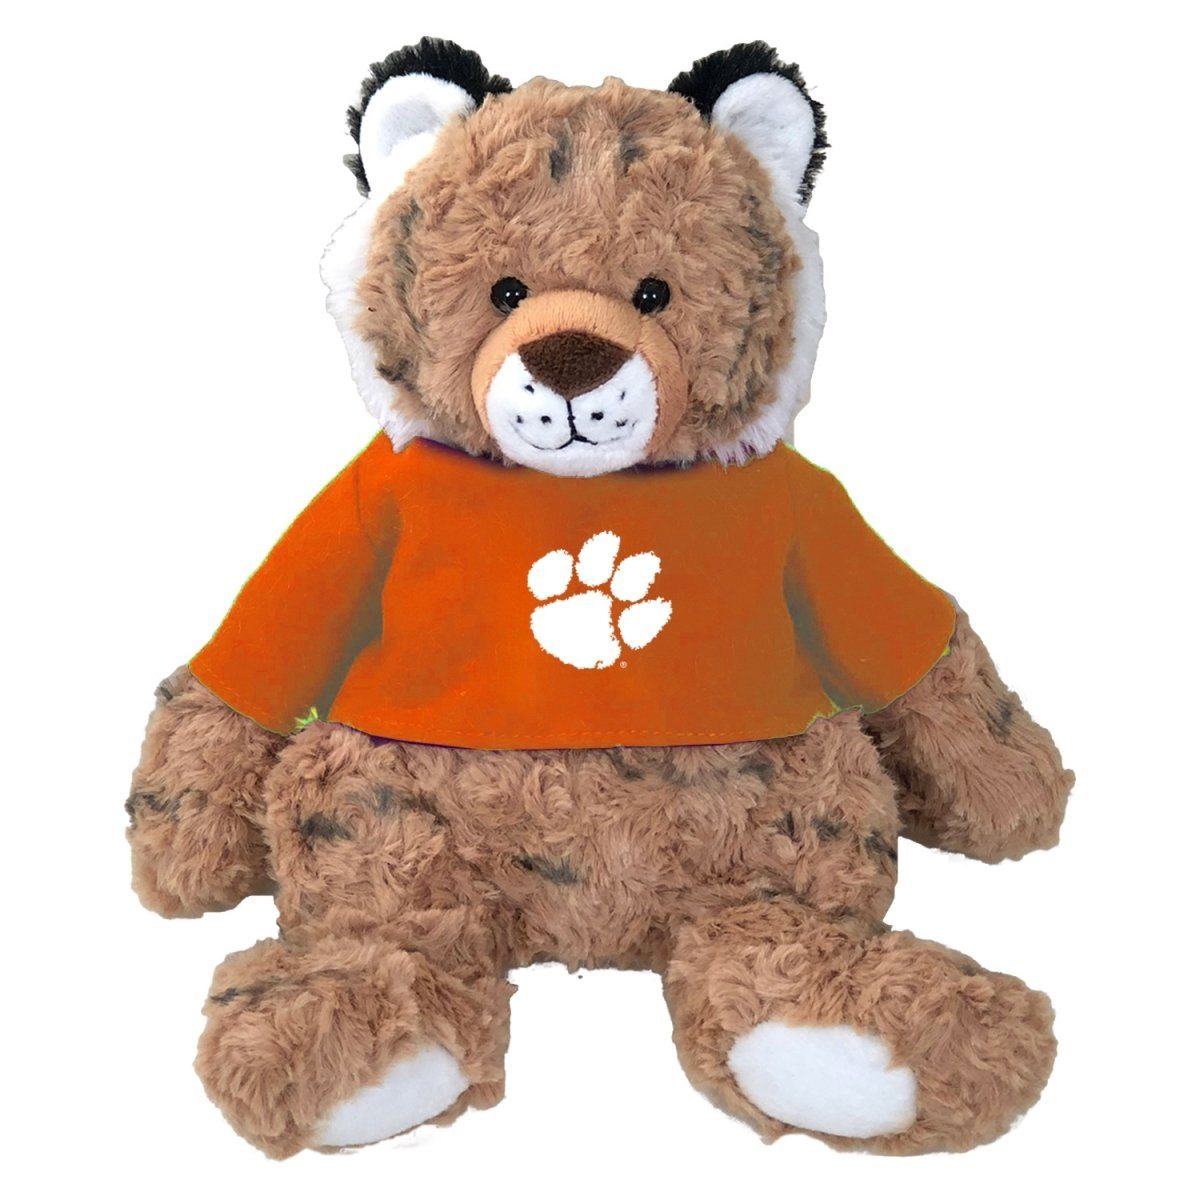 Cuddle Buddy Tiger With Orange Shirt White Paw - Mr. Knickerbocker